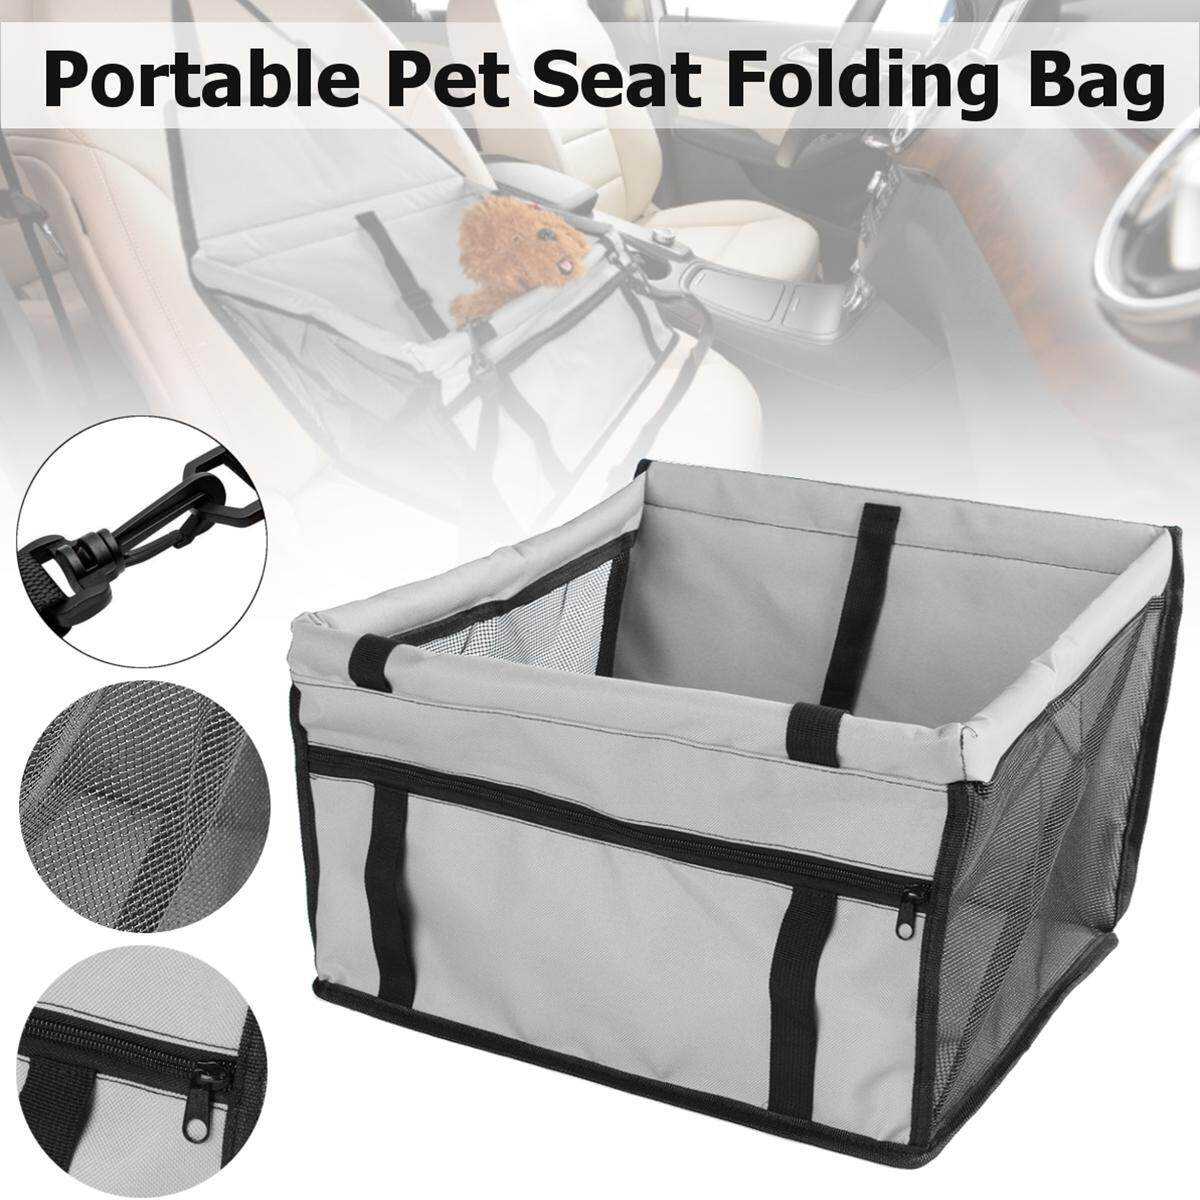 Portable Pet Car Seat Folding Travel Booster Bag Safely Carrier Belt Dog Puppy (light Grey) By Freebang.